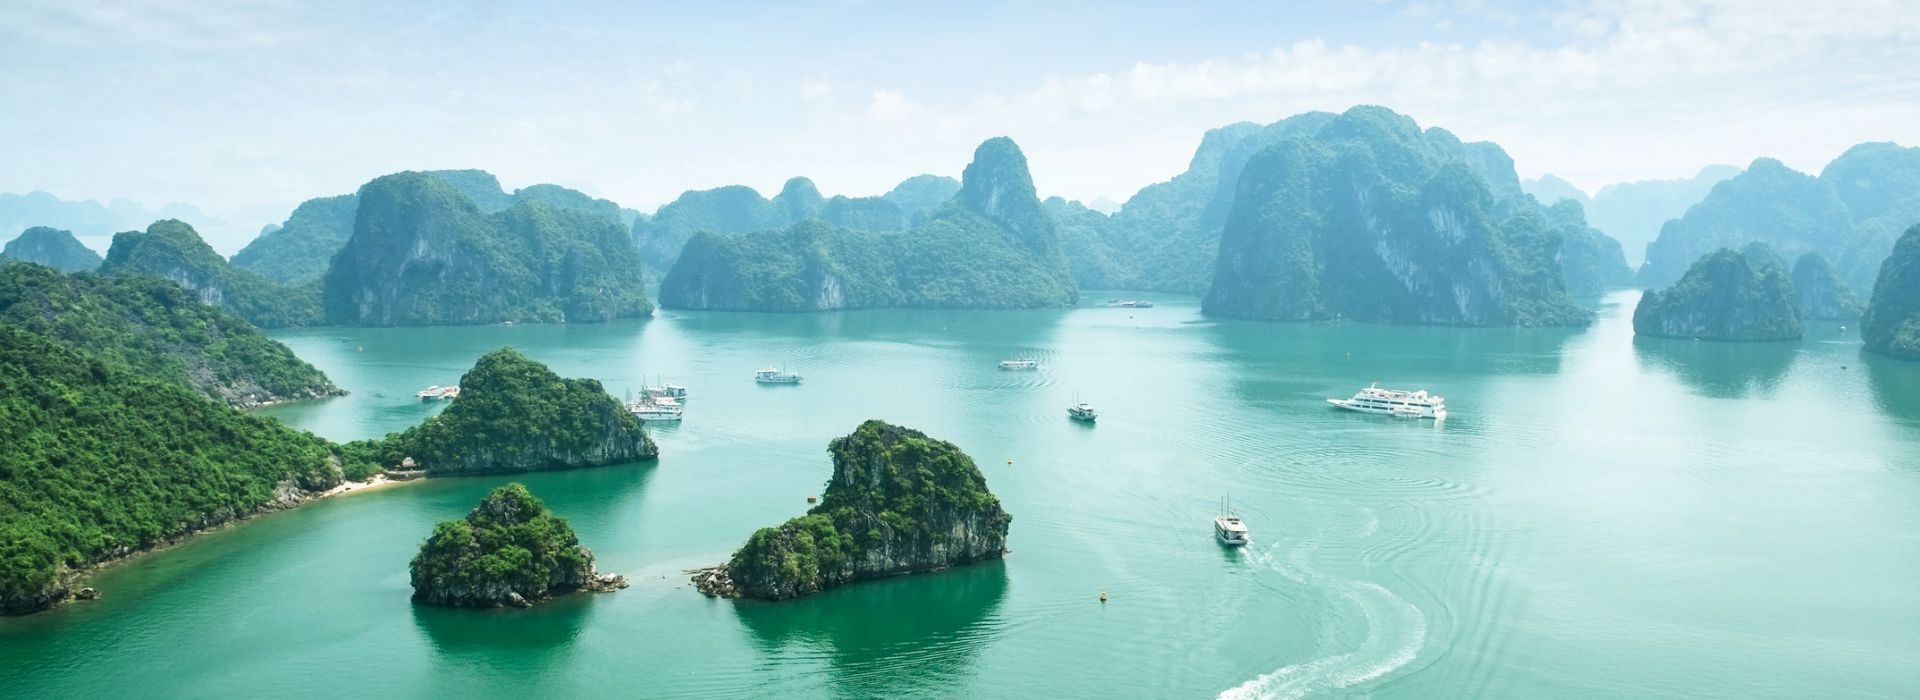 Party and nightlife Tours in Ho Chi Minh City